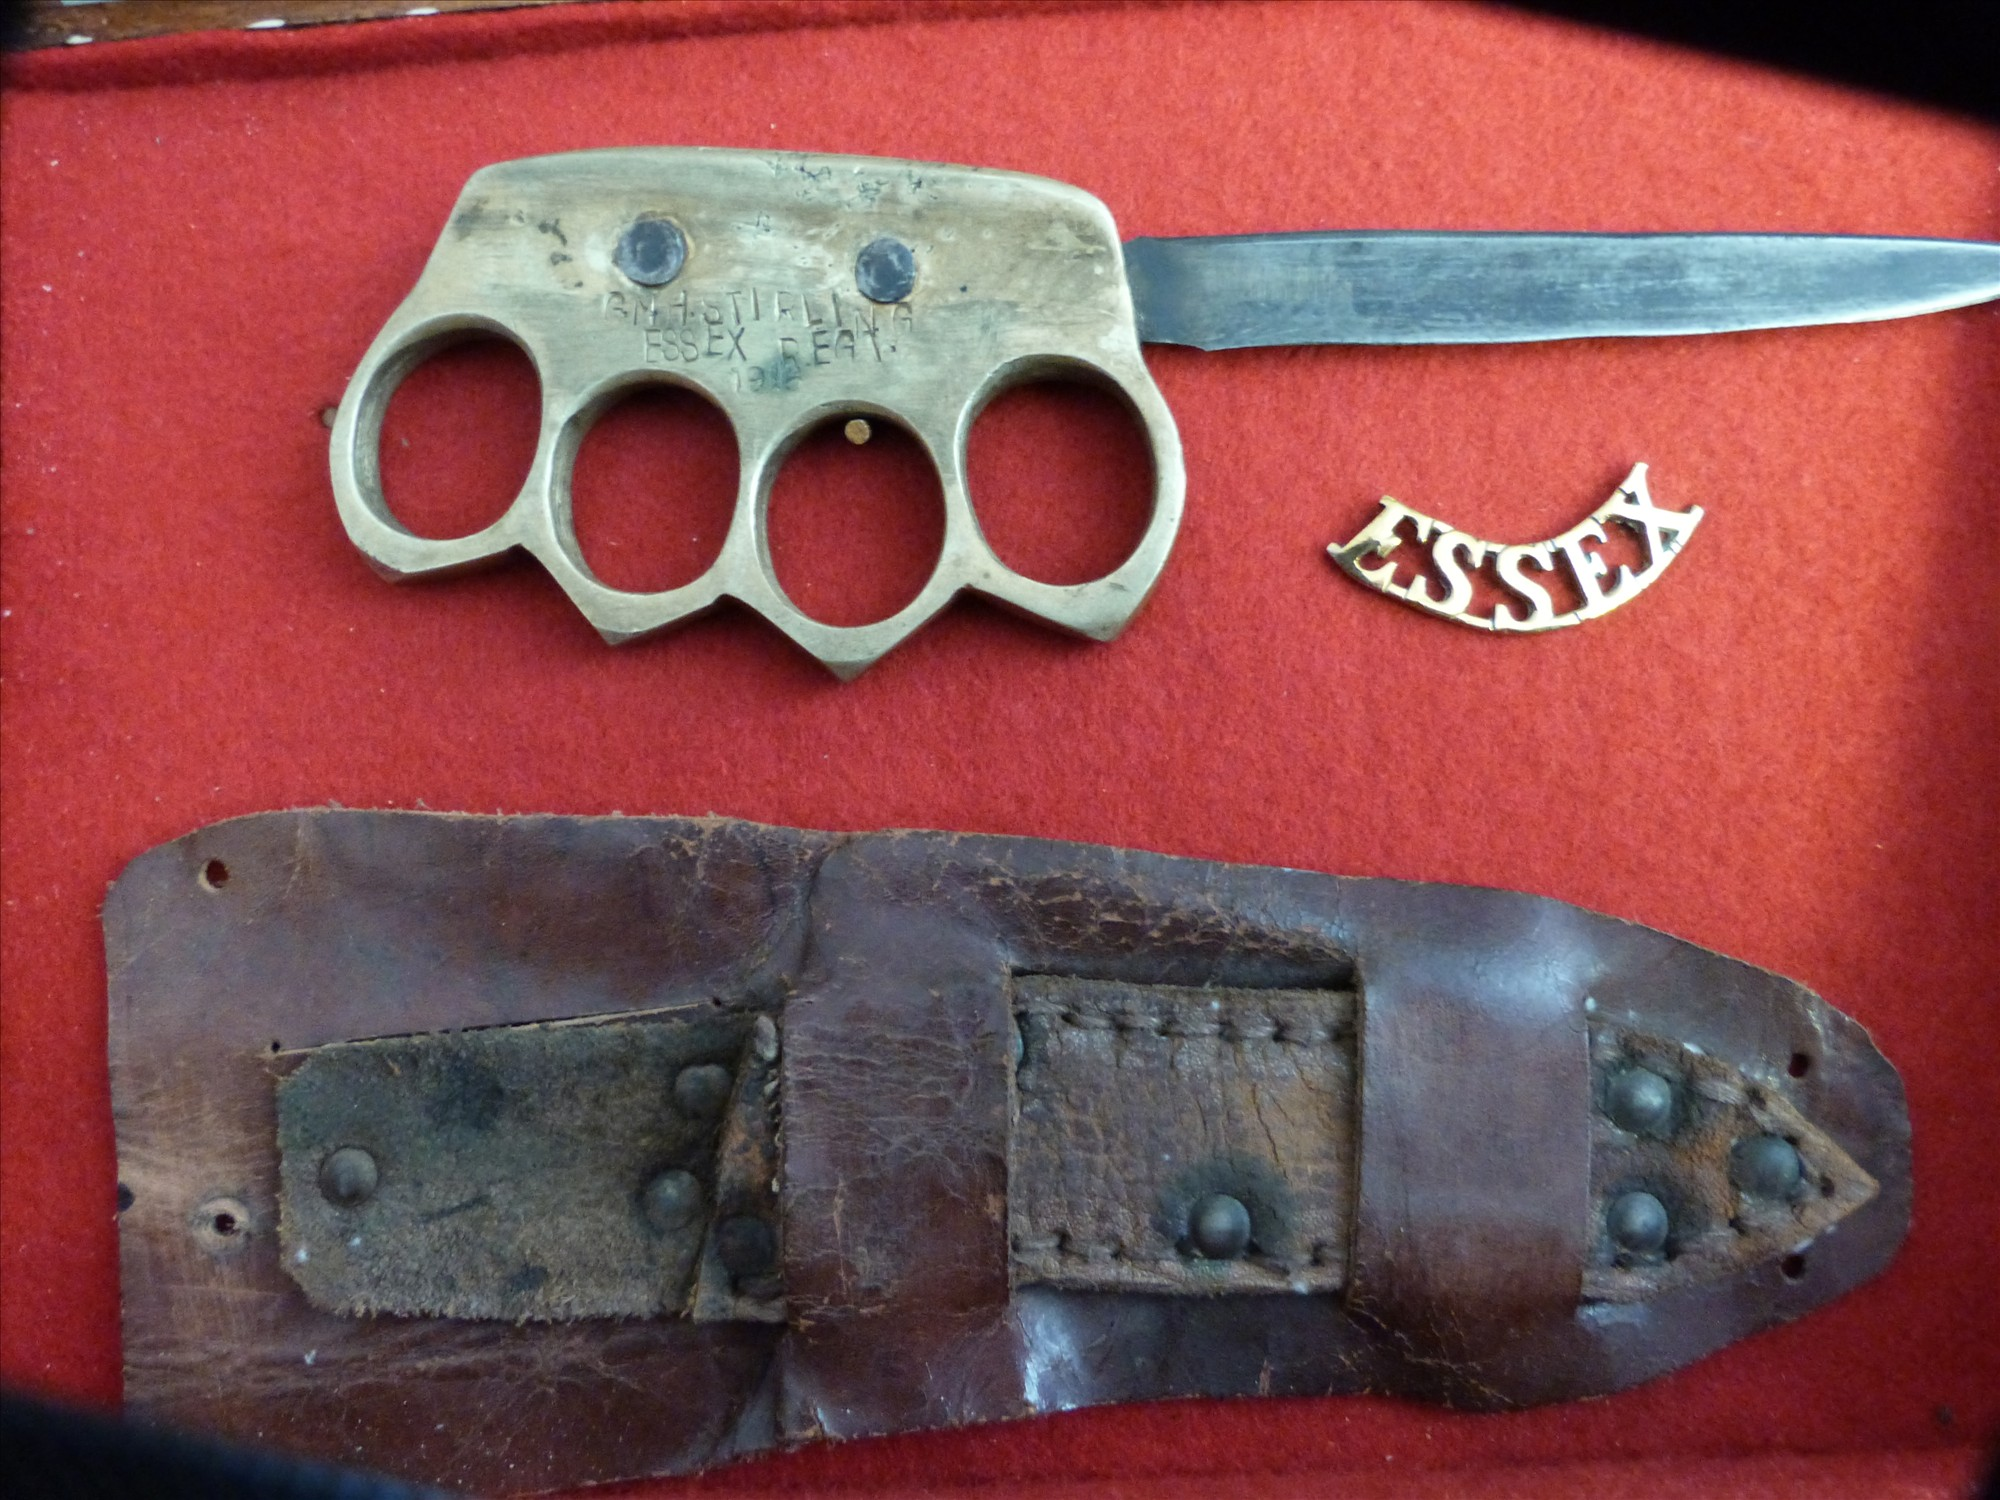 Museum's trench knife stolen